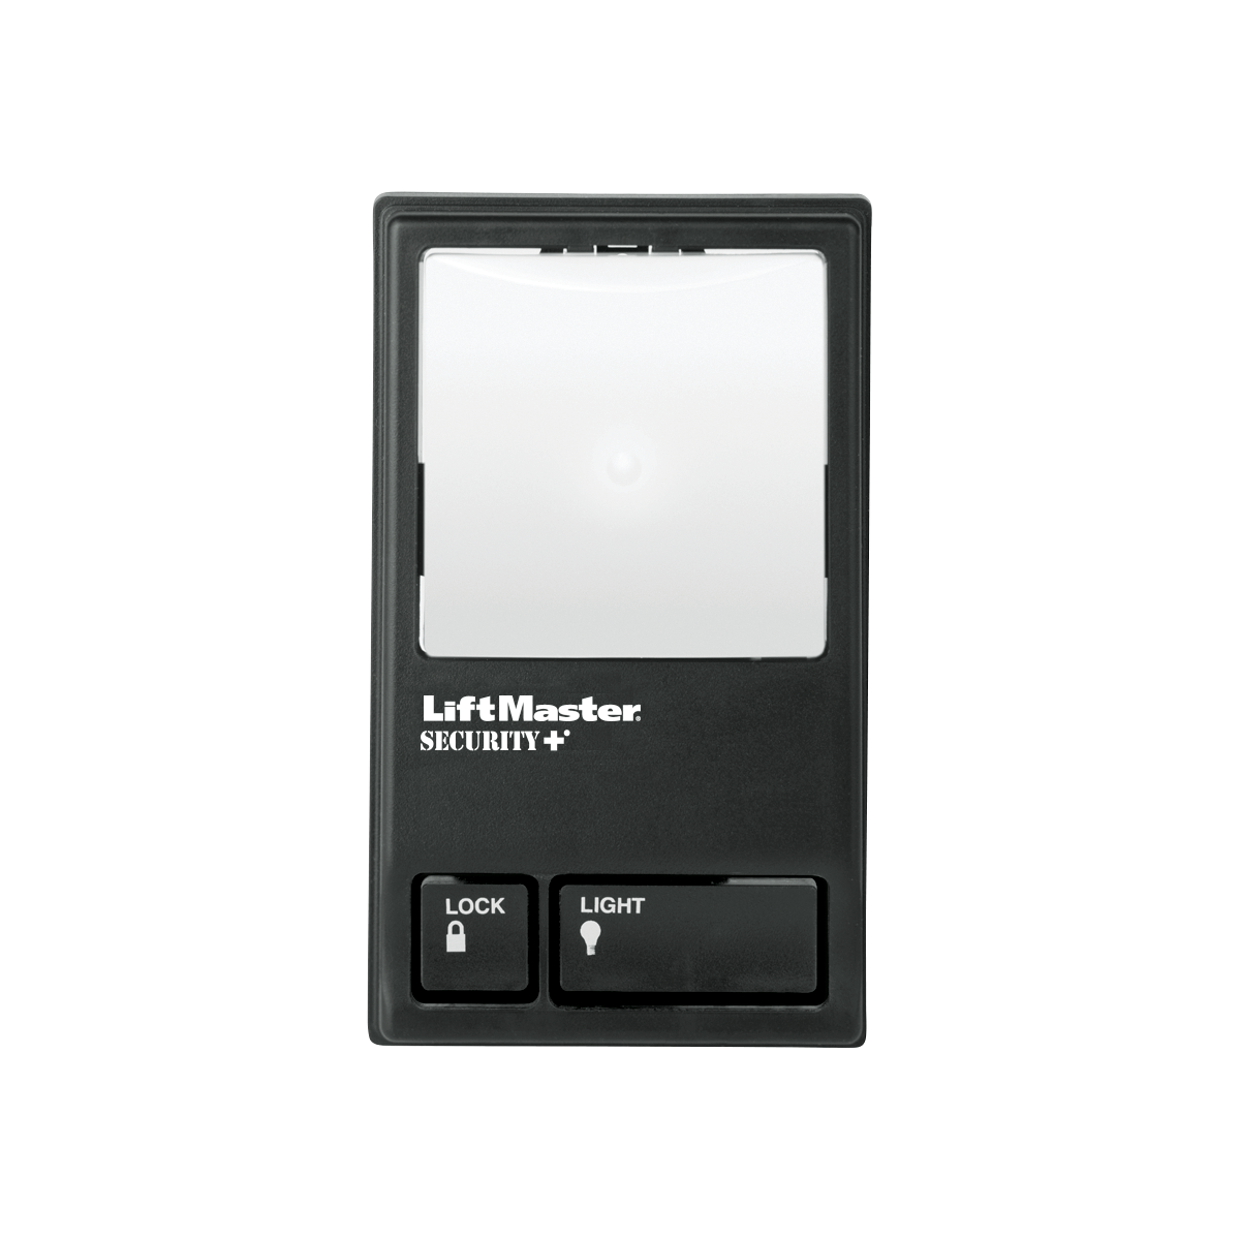 78LM Liftmaster Multi-Function Wall Control Panel